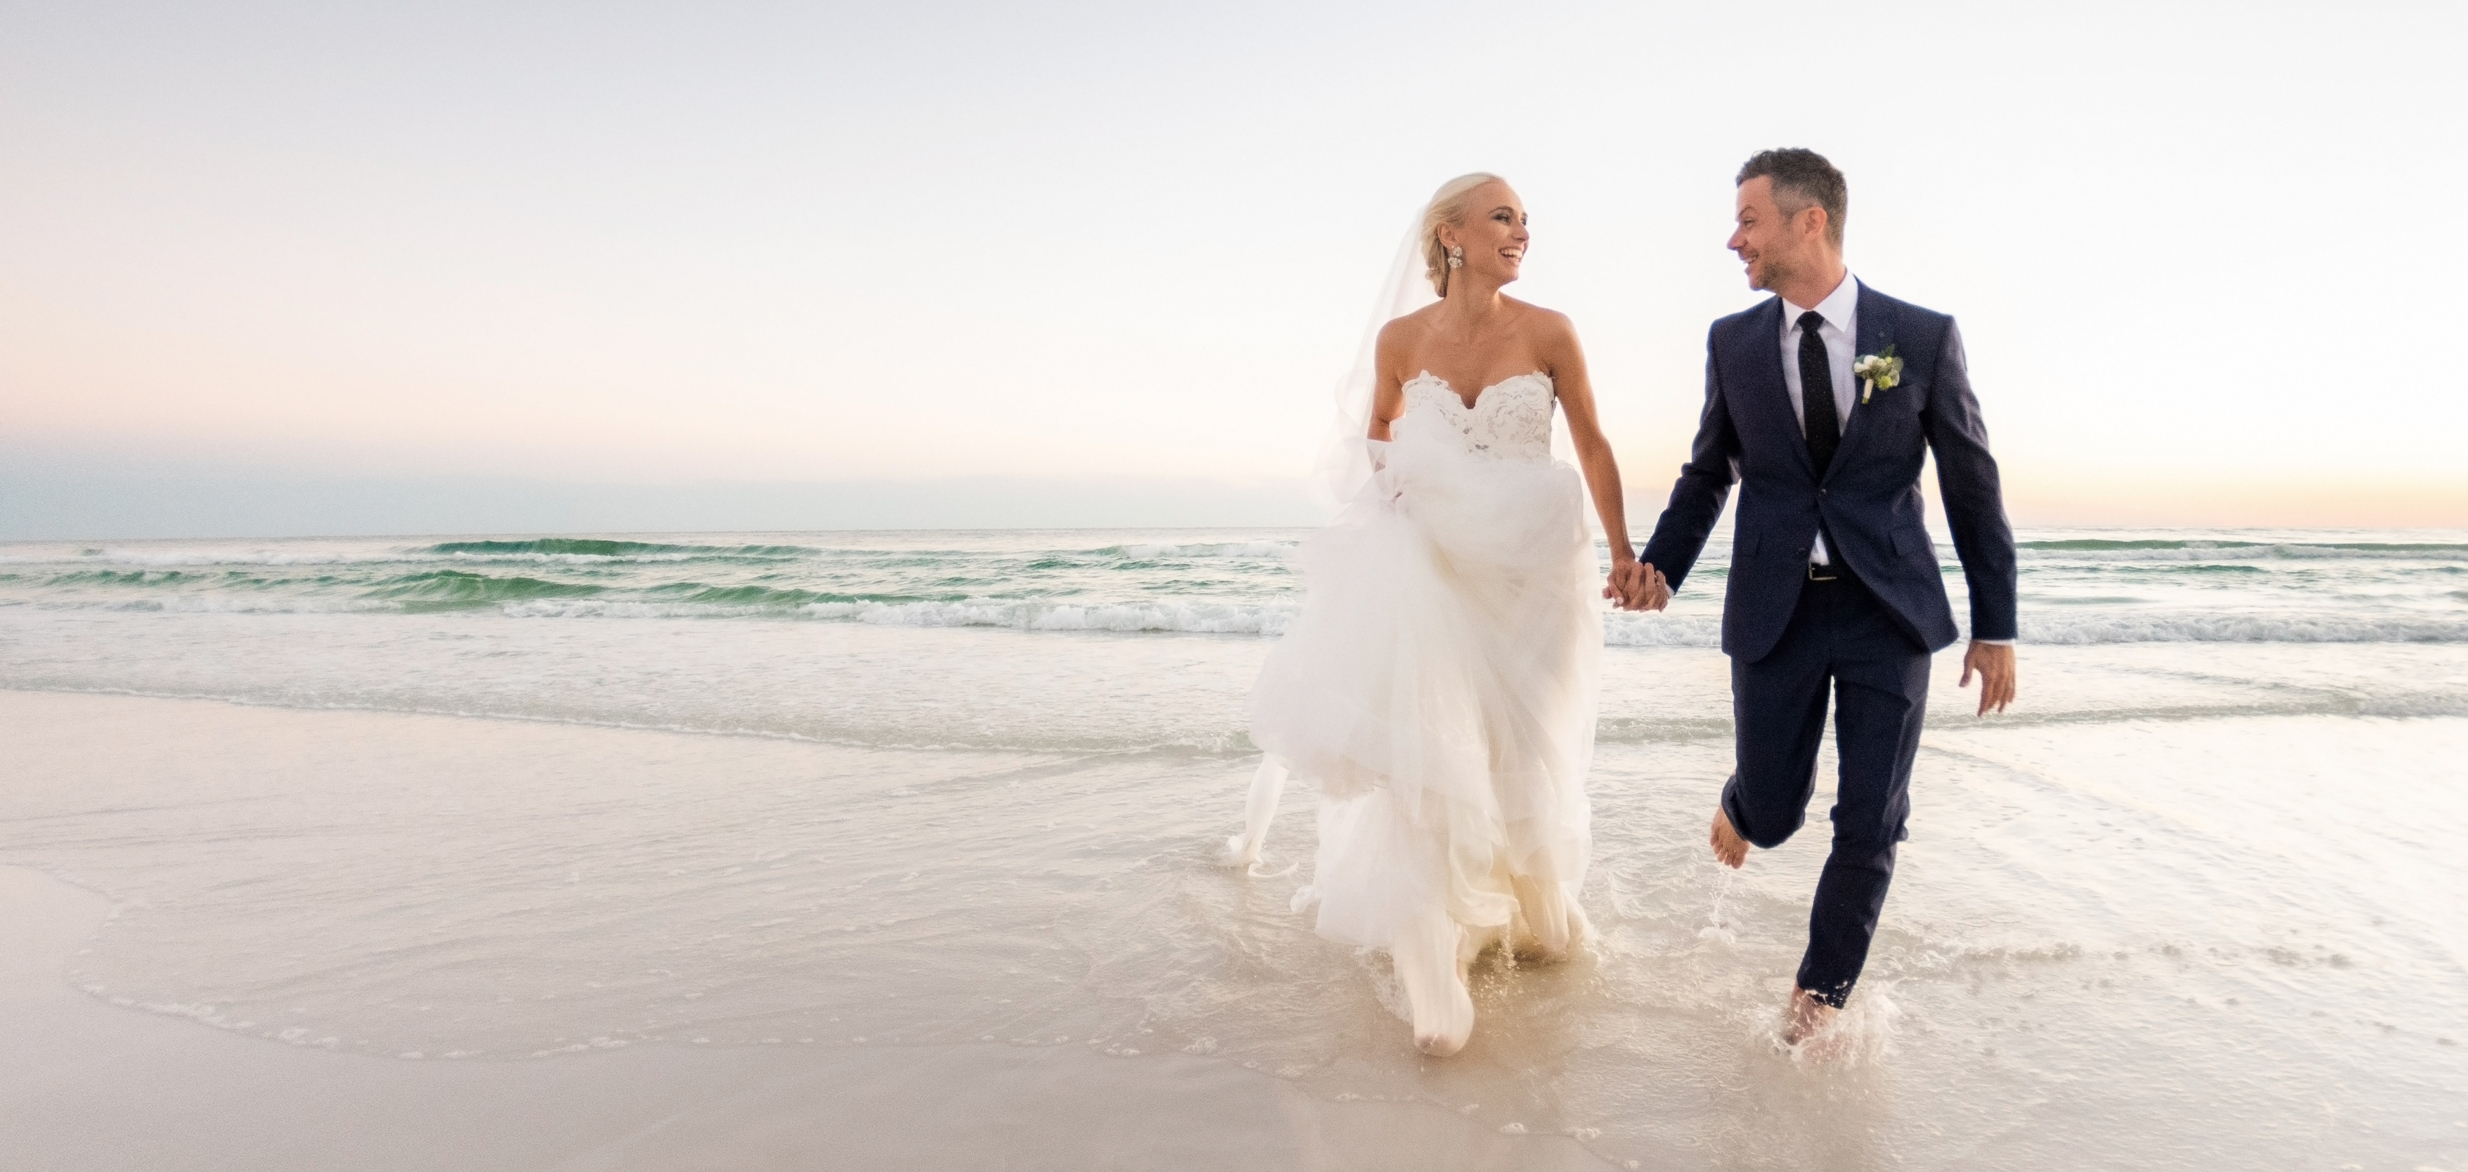 Destination wedding - Aislinn Kate Wedding Photography - Pensacola, Florida